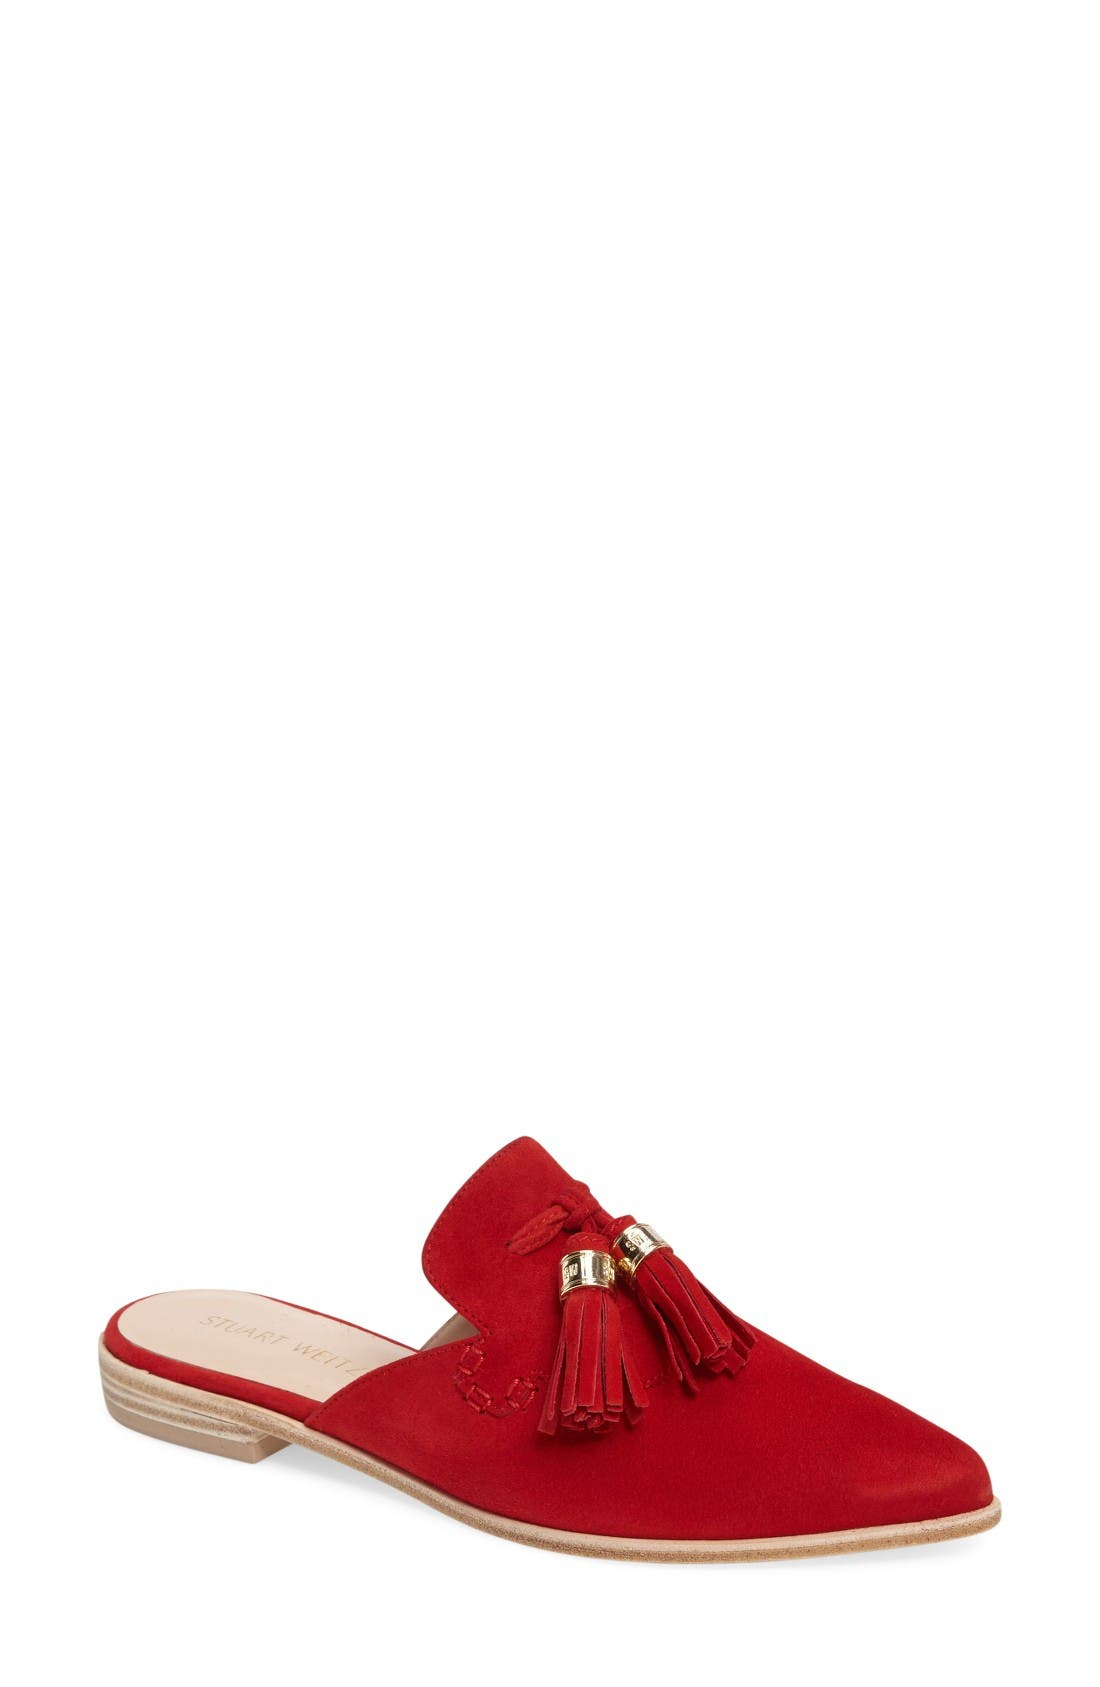 Main Image - Stuart Weitzman 'Slidealong' Slide Loafer (Women)